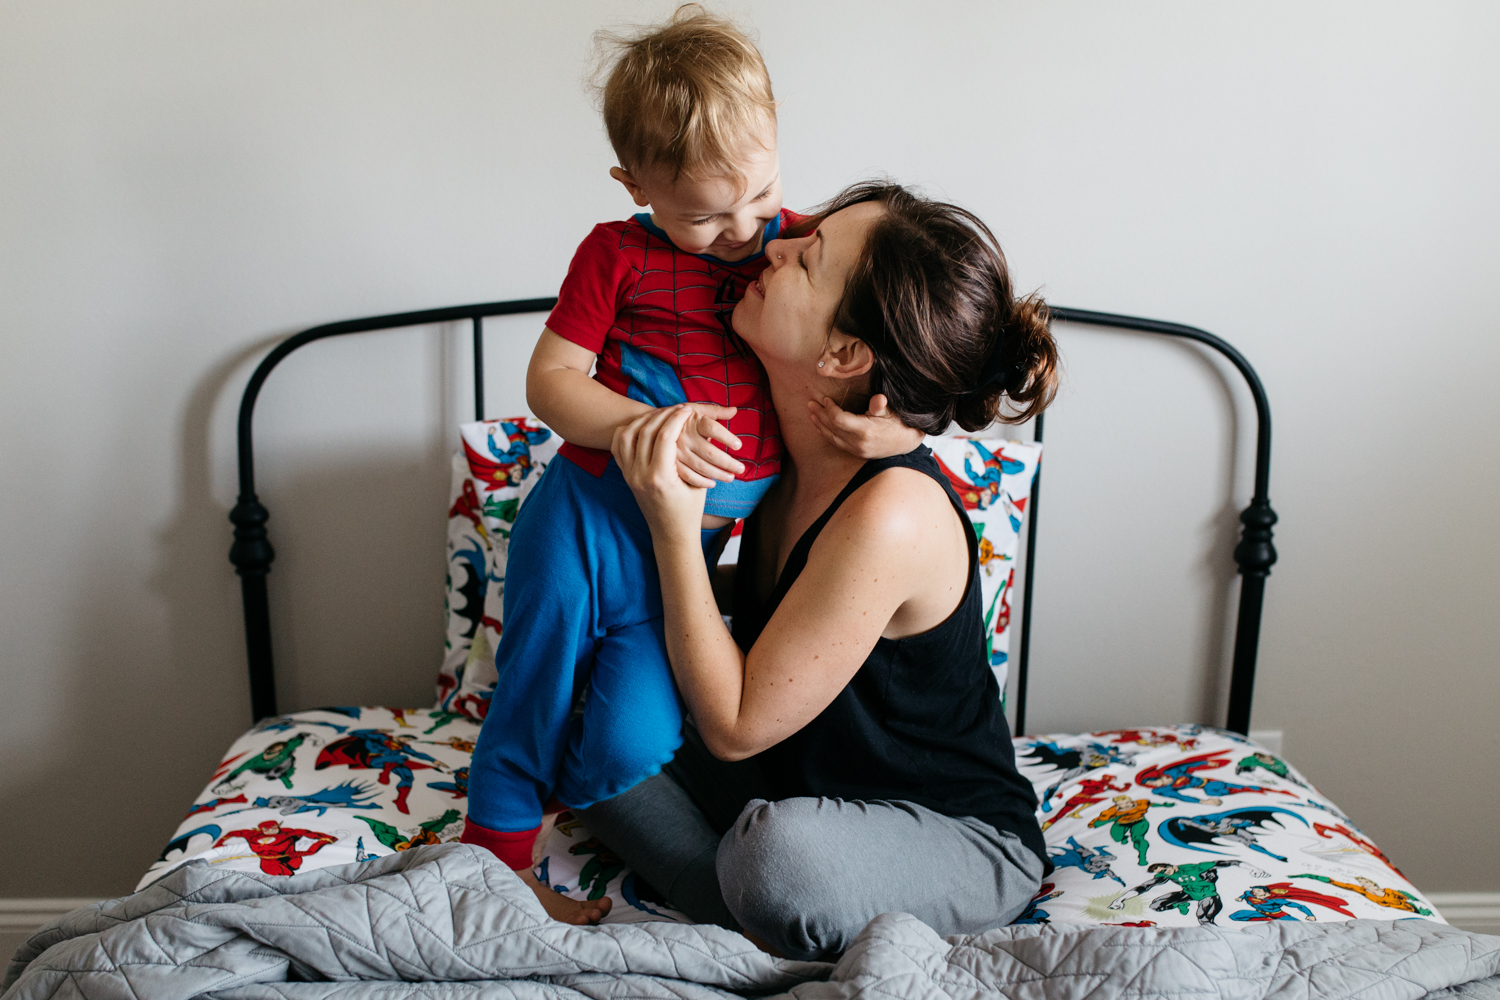 Mom and Baby Playing in Superhero Bedroom Orlando Lifestyle Family Photographer.jpg